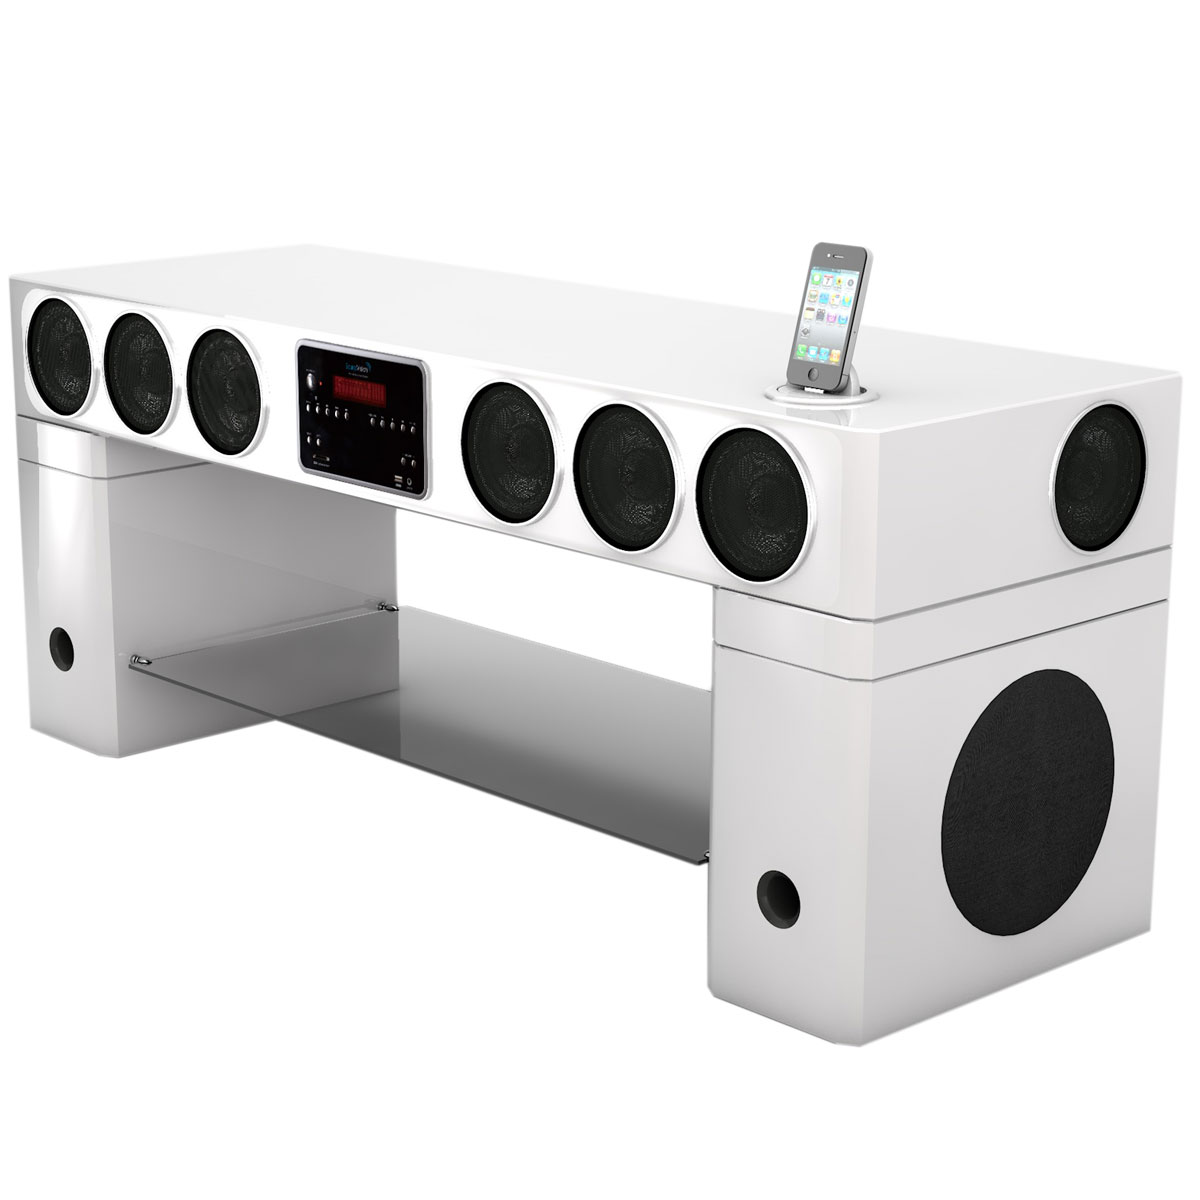 soundvision sv 440 bt blanc ensemble home cin ma soundvision sur ldlc. Black Bedroom Furniture Sets. Home Design Ideas